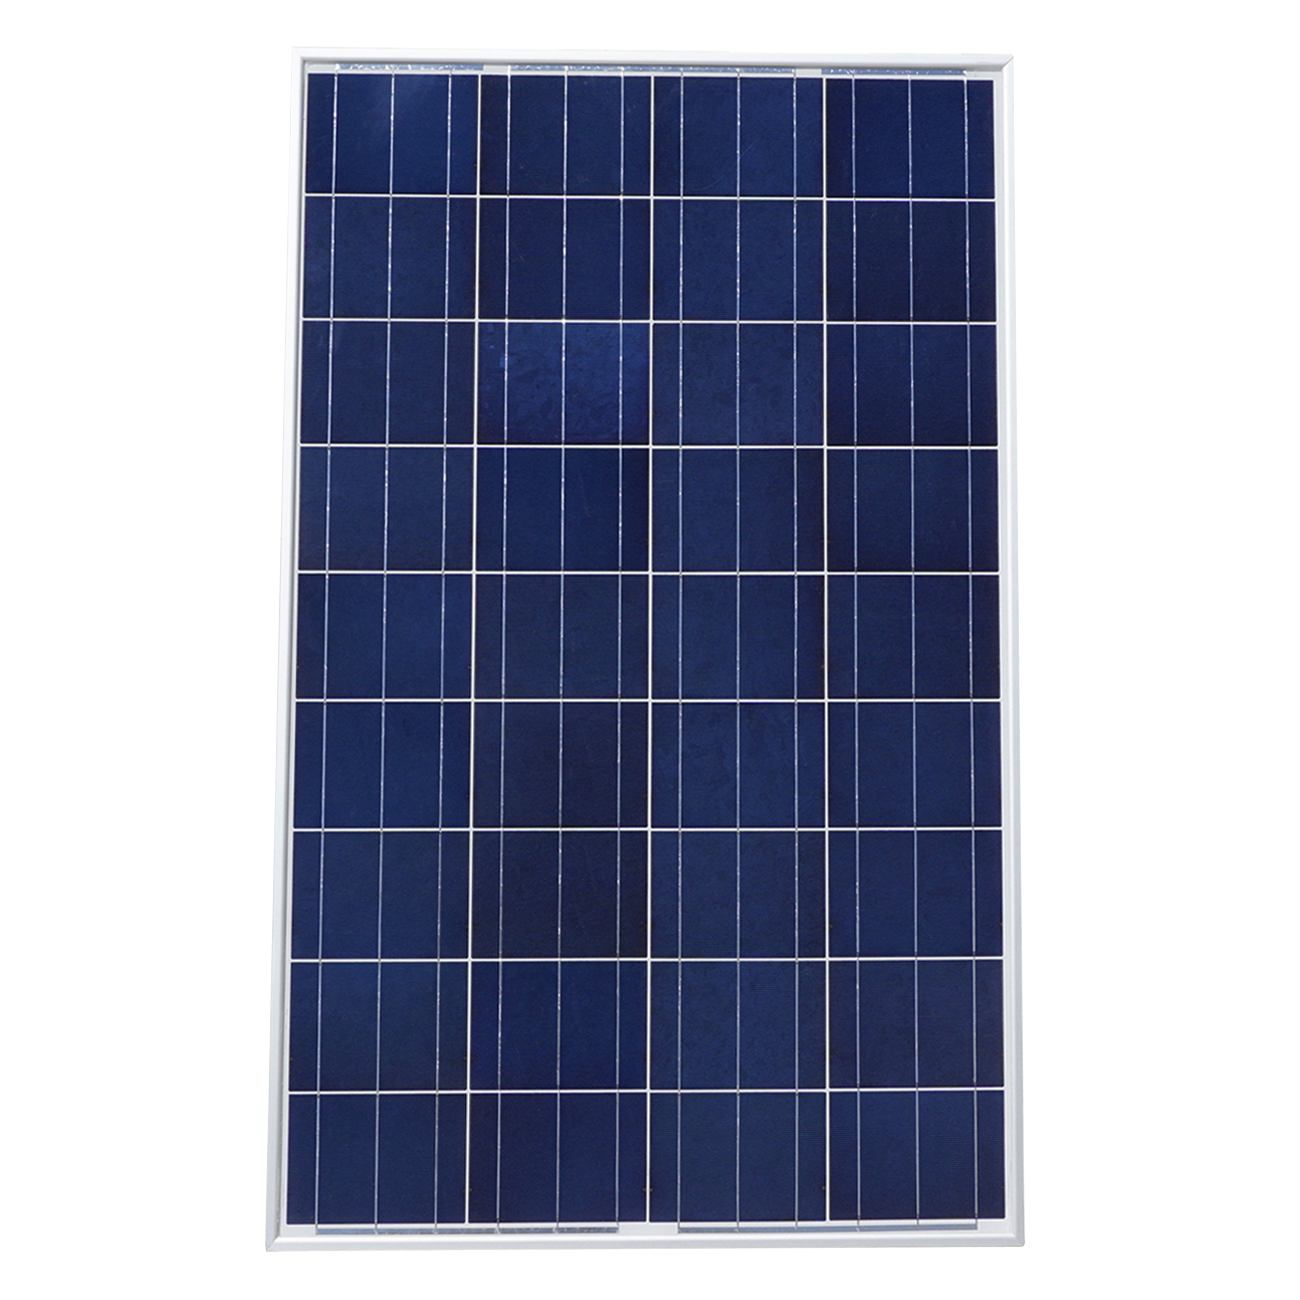 AU CA EU USA Stock 100W 18V Polycrystalline Solar Panel for 12v Battery Off Grid System Solar for Home System 100w folding solar panel solar battery charger for car boat caravan golf cart